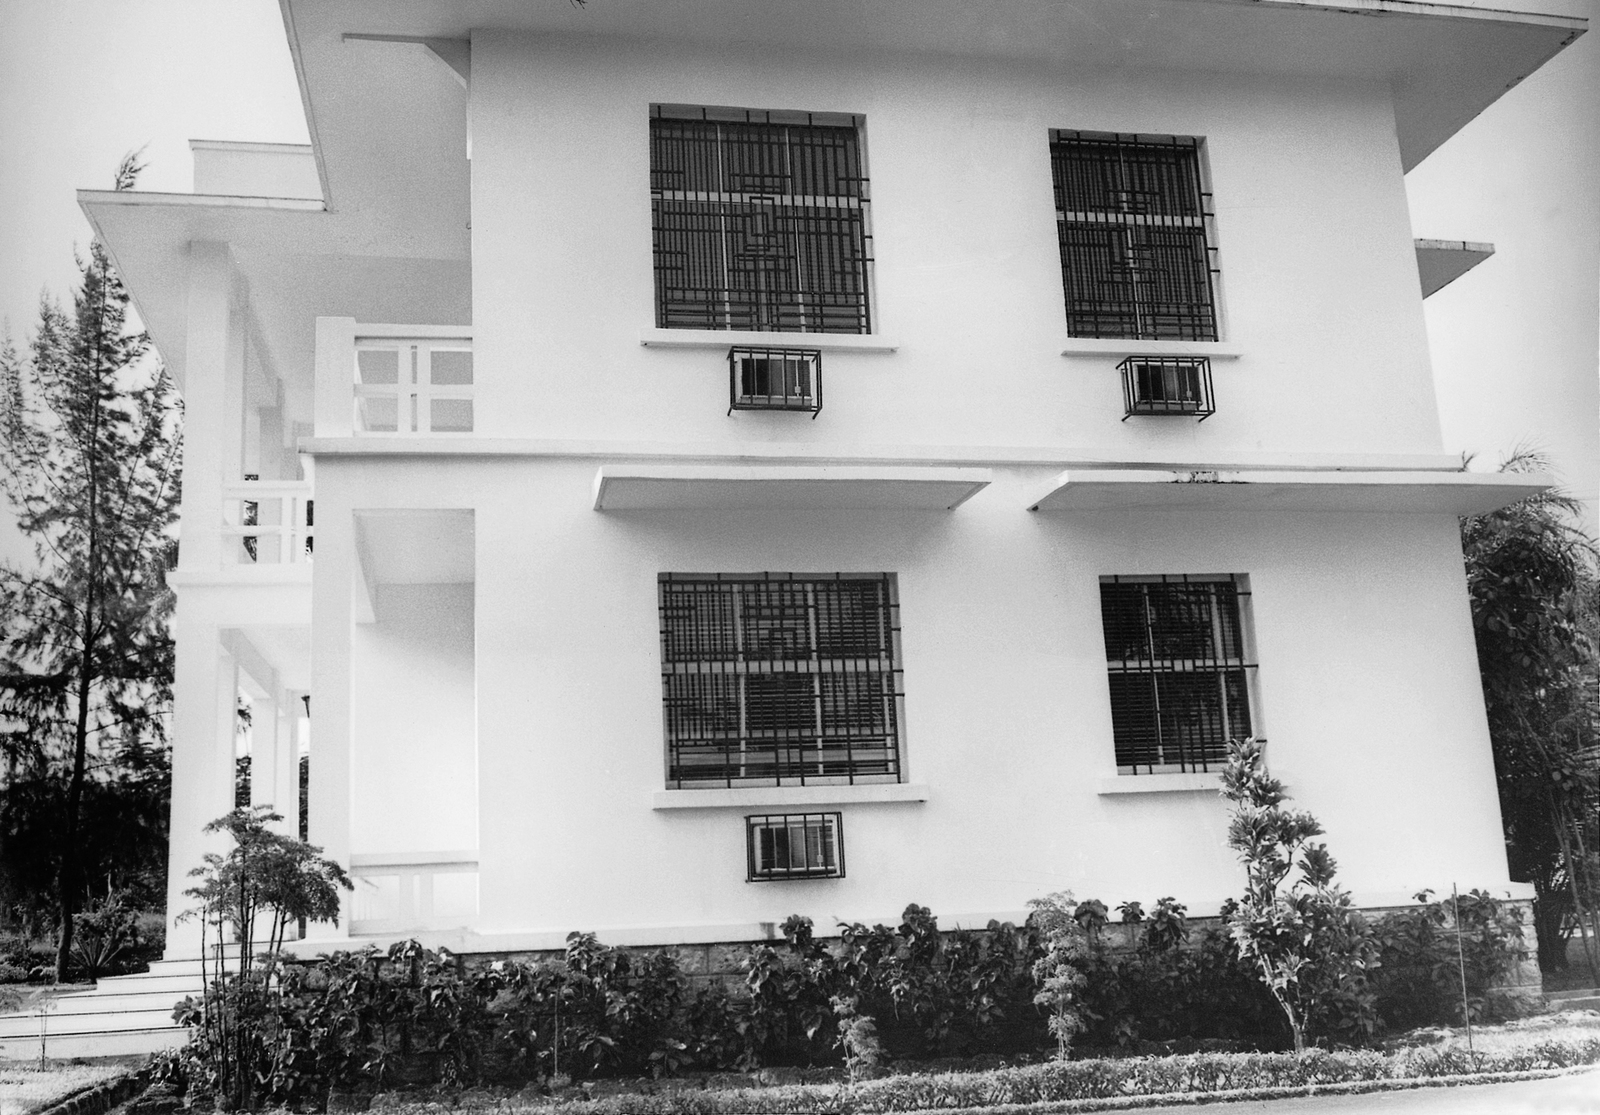 Libreville - Chancery Office Building - 1970